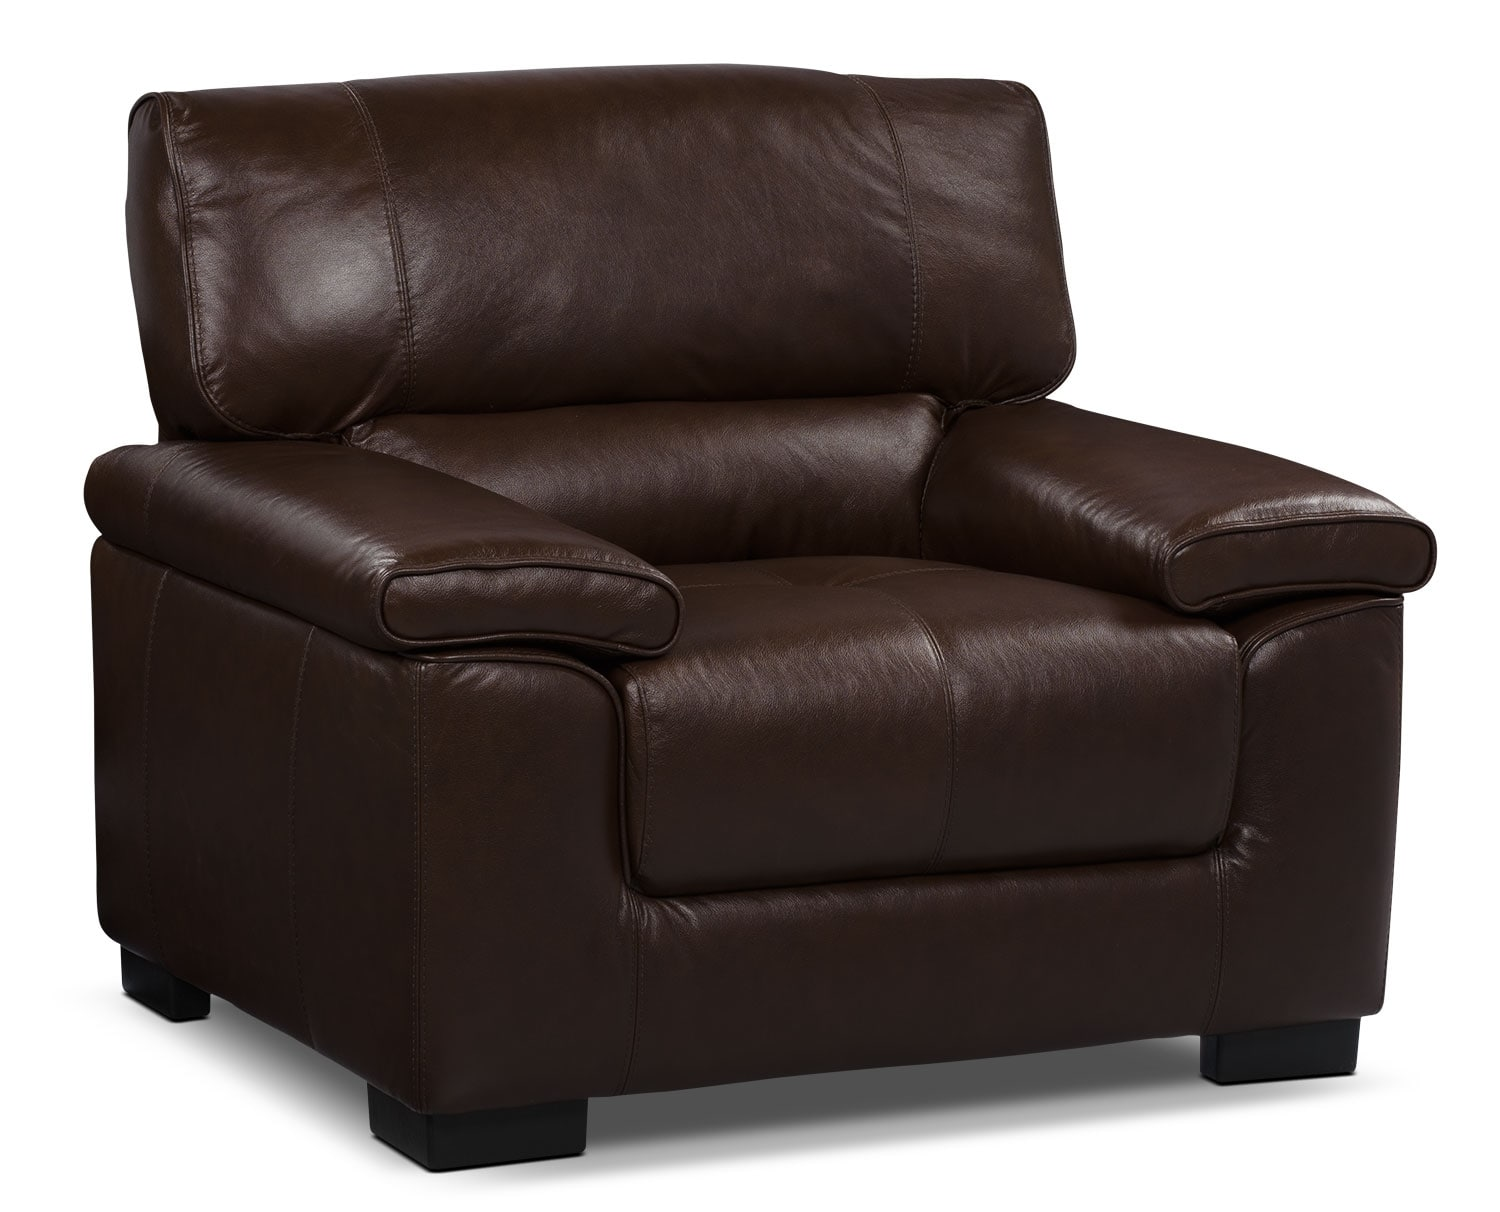 Chateau Dax Furniture Reviews: Chateau D'Ax 100% Genuine Leather Chair - Dark Brown